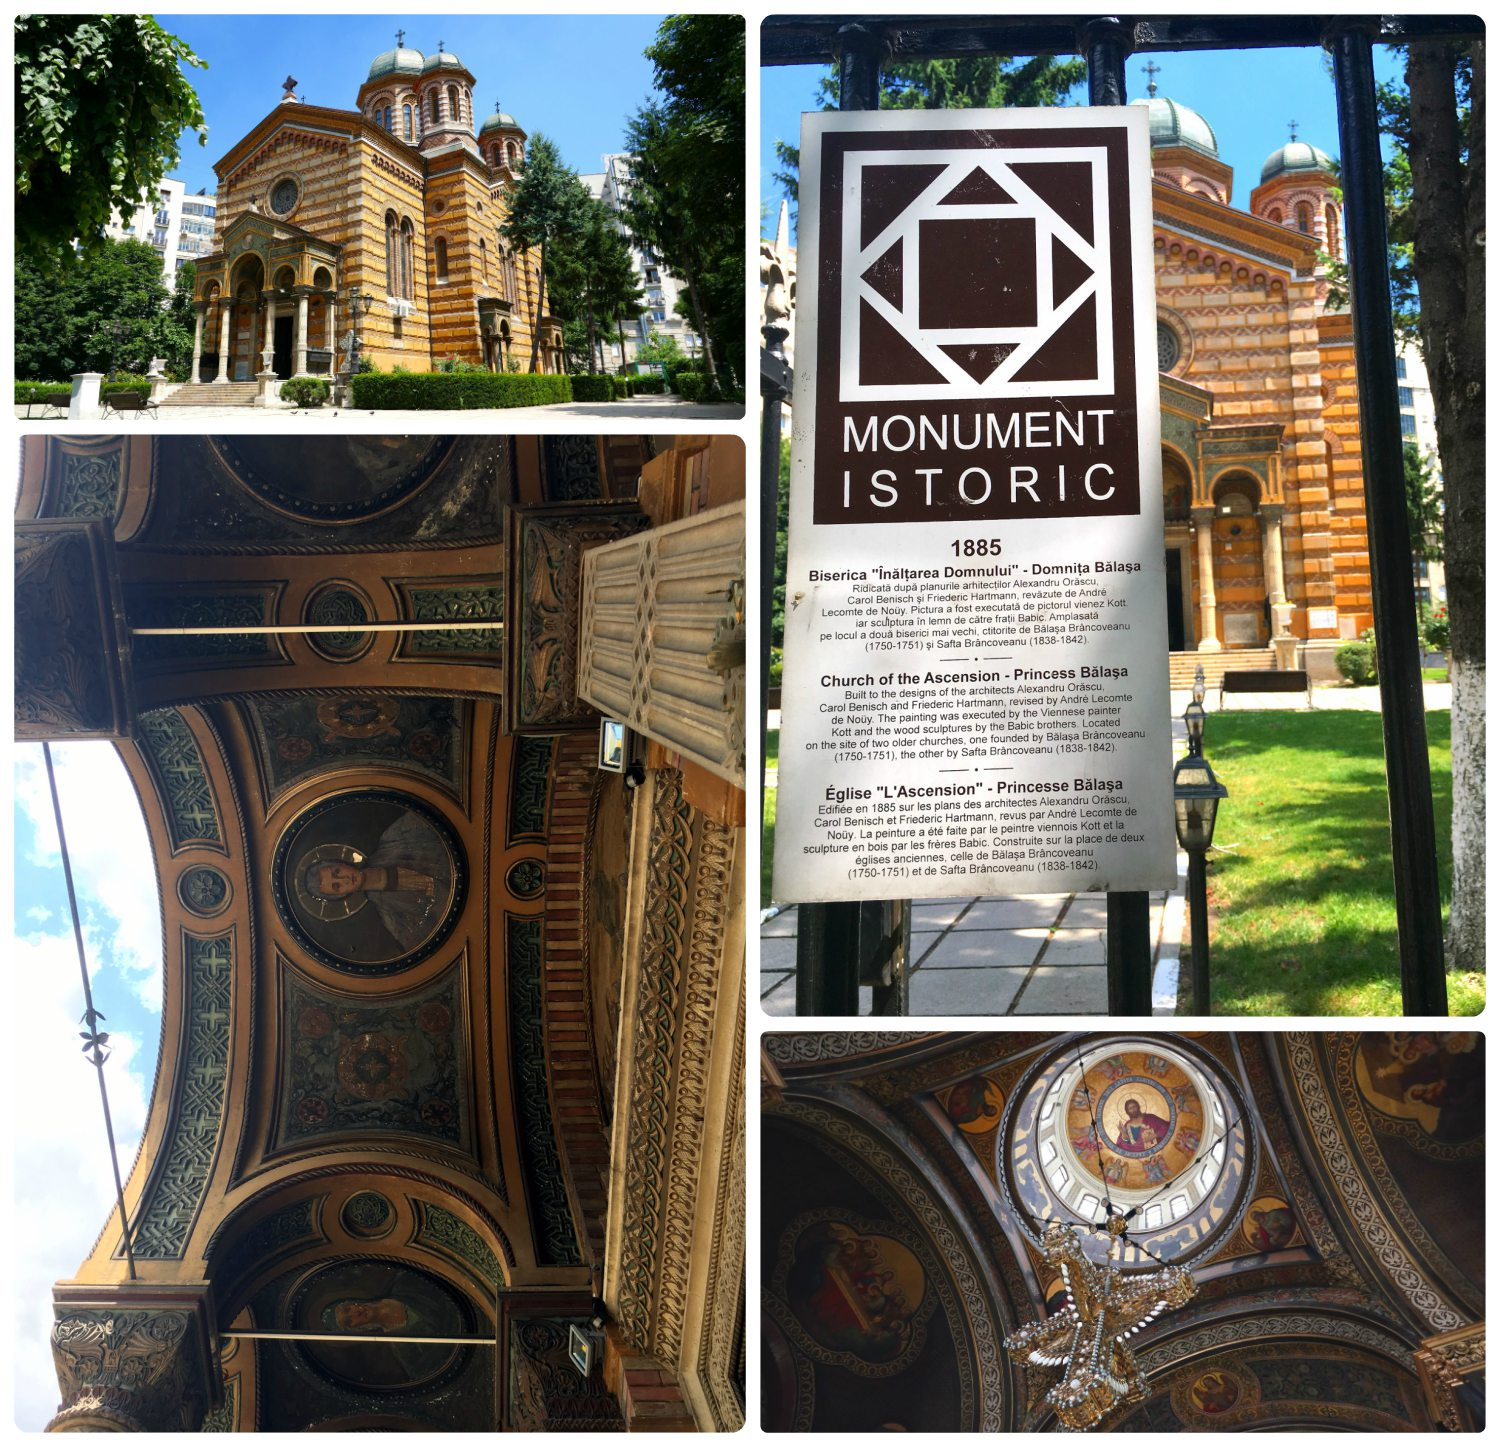 The gardens and the exterior of the Lady Balasa Church are beautiful, and the interior is stunning. When visiting Bucharest, you'll likely notice 'Monument Istoric' signs posted on historical landmarks throughout the city that give a brief historical description of the site.